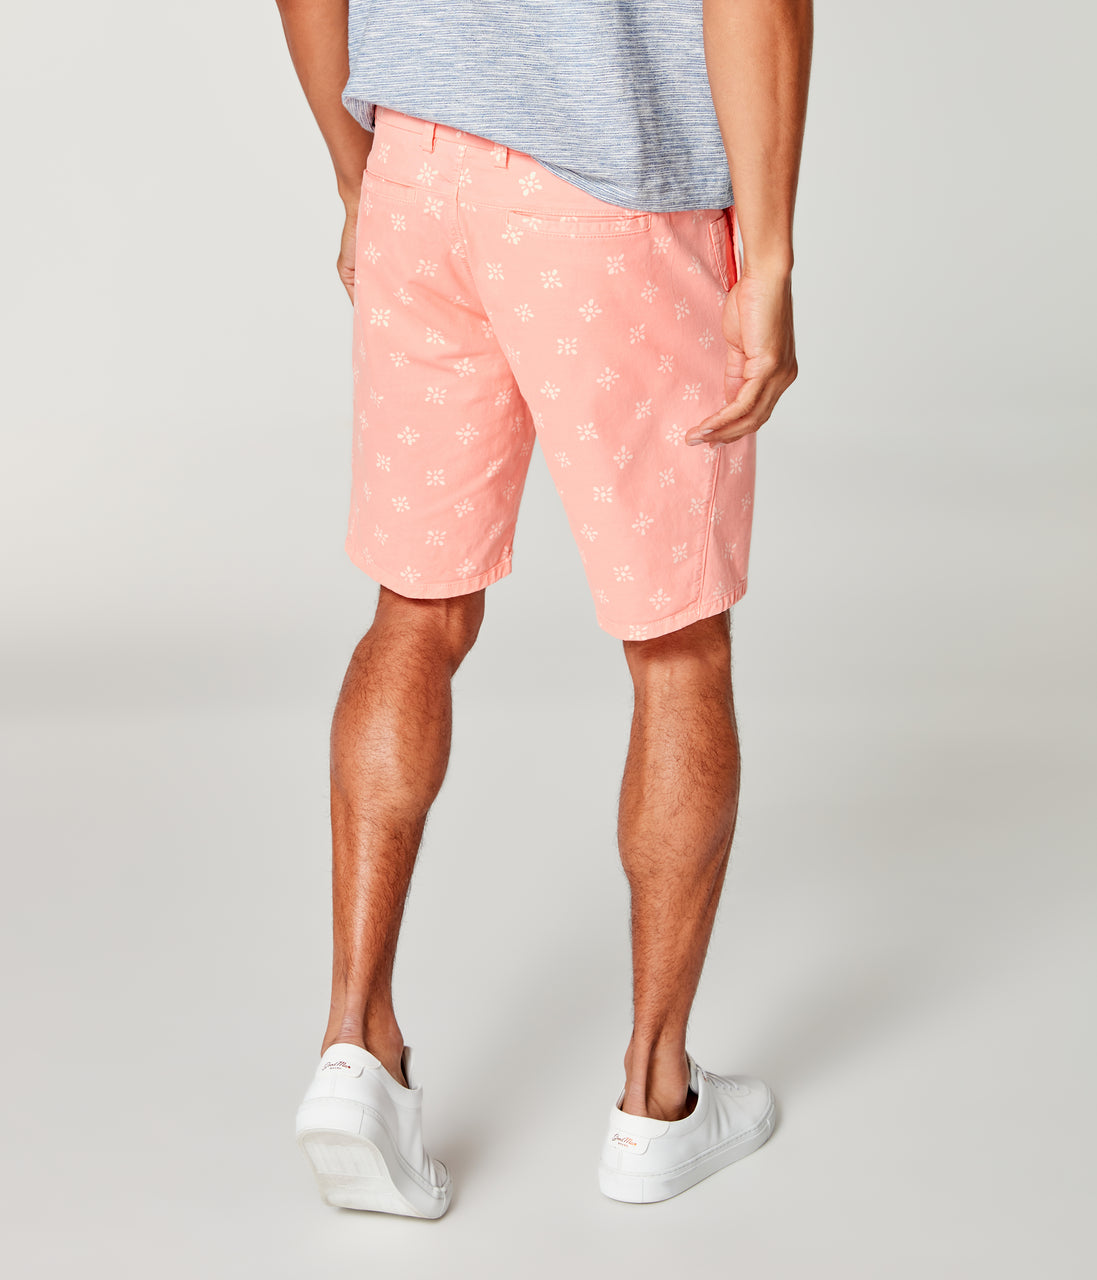 Monaco Stretch Twill Floral Wrap Short - Hibiscus - Good Man Brand - Monaco Stretch Twill Floral Wrap Short - Hibiscus